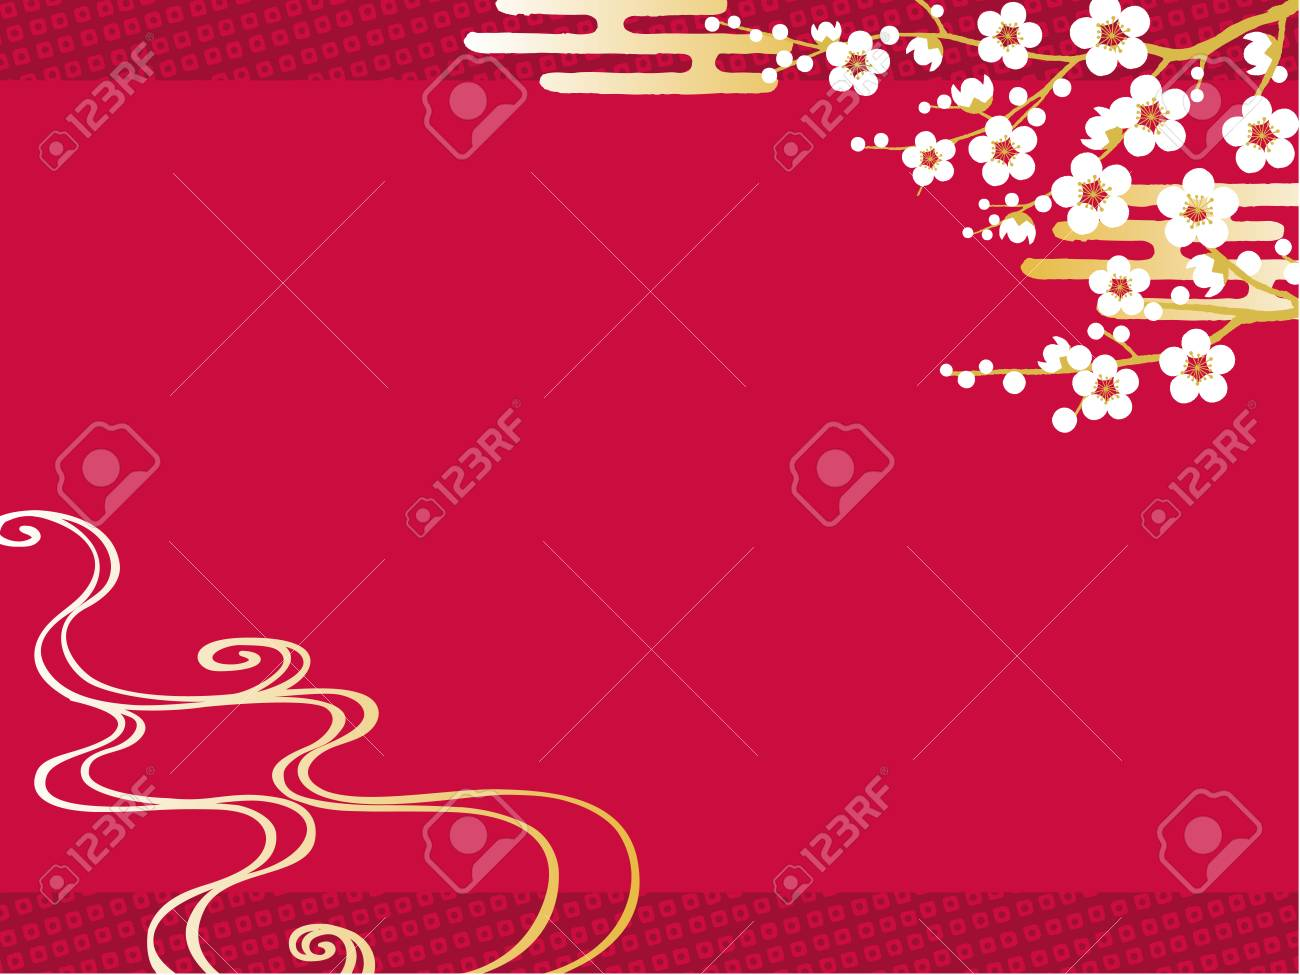 Plum Sea waves New Year's card background - 84925999